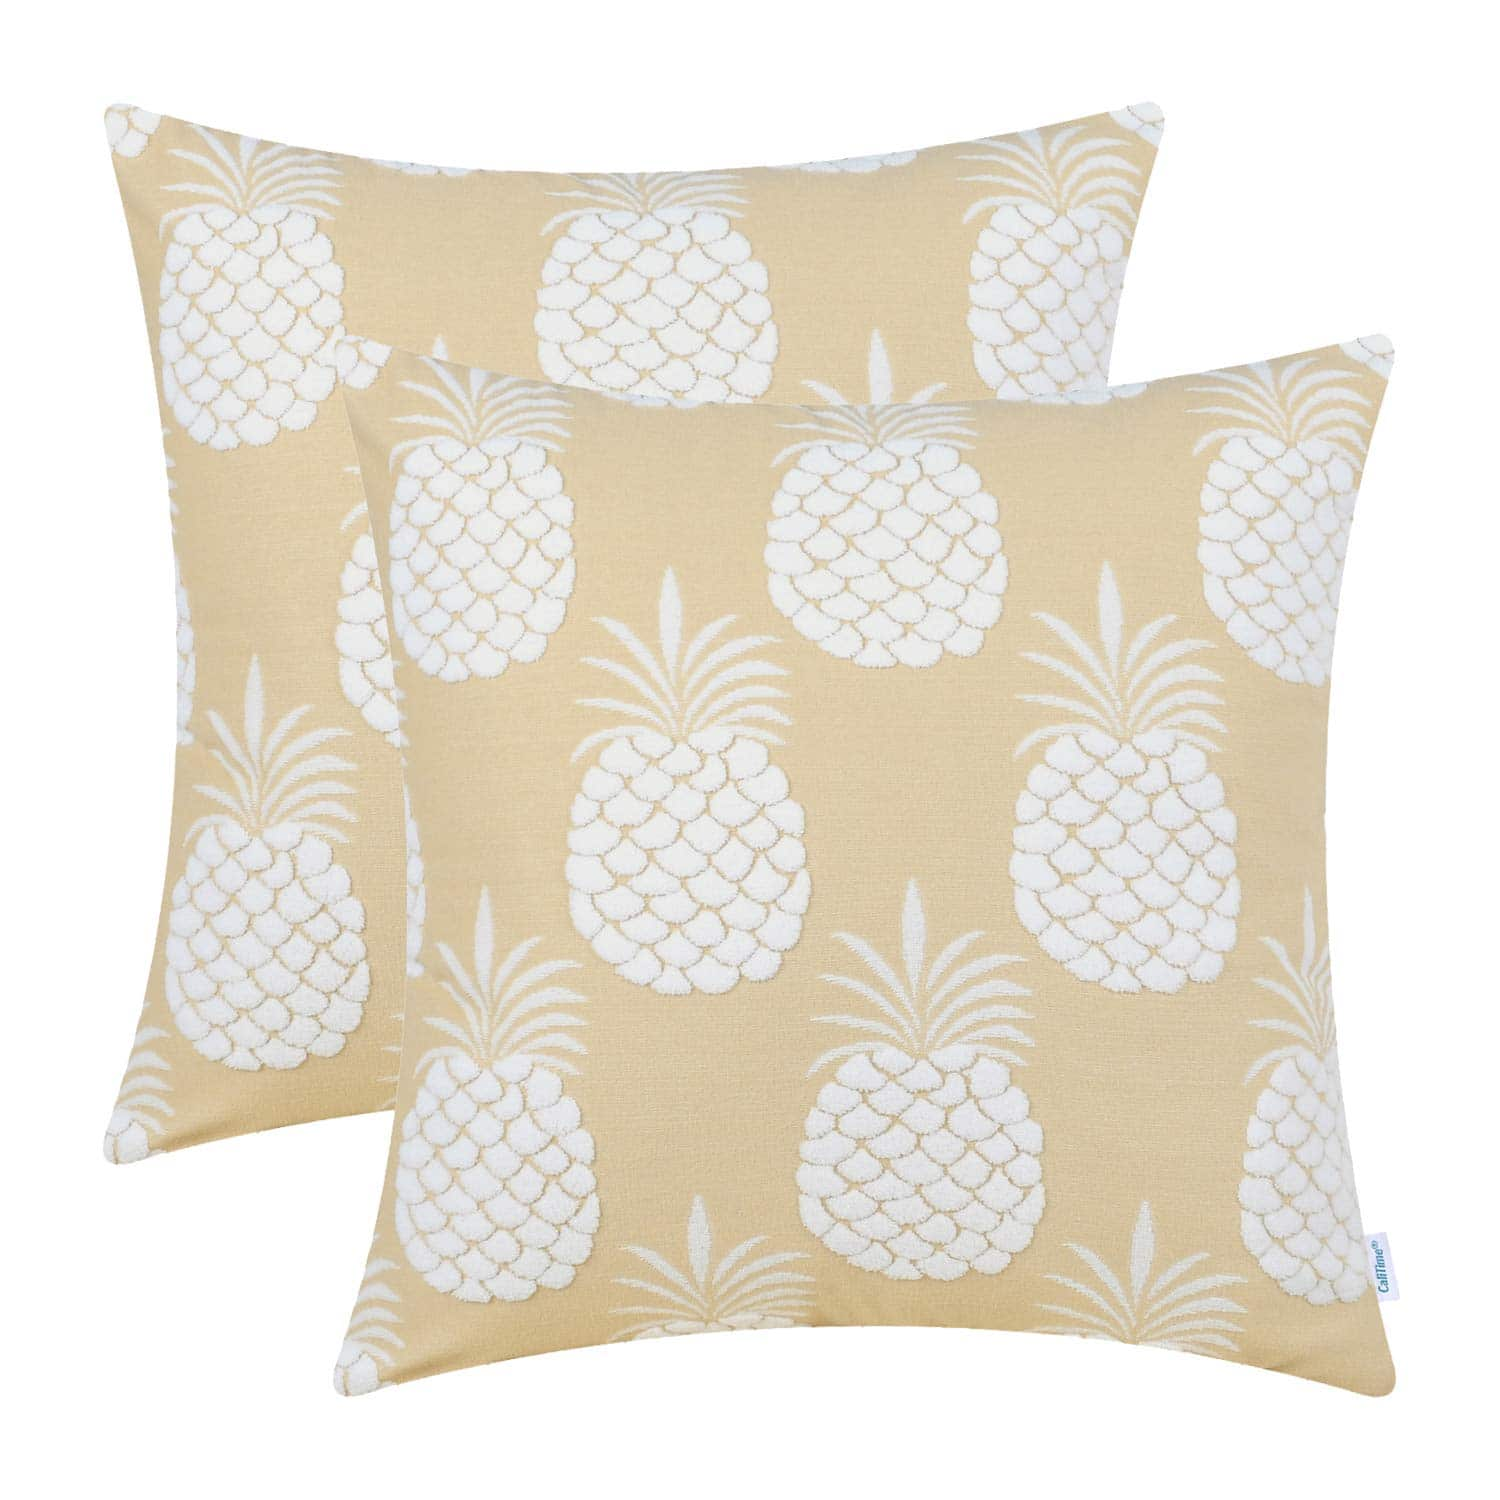 CaliTime 2 Pack of 18x18 inch Throw Pillow Covers - Pineapple - Various Colors for $5.60